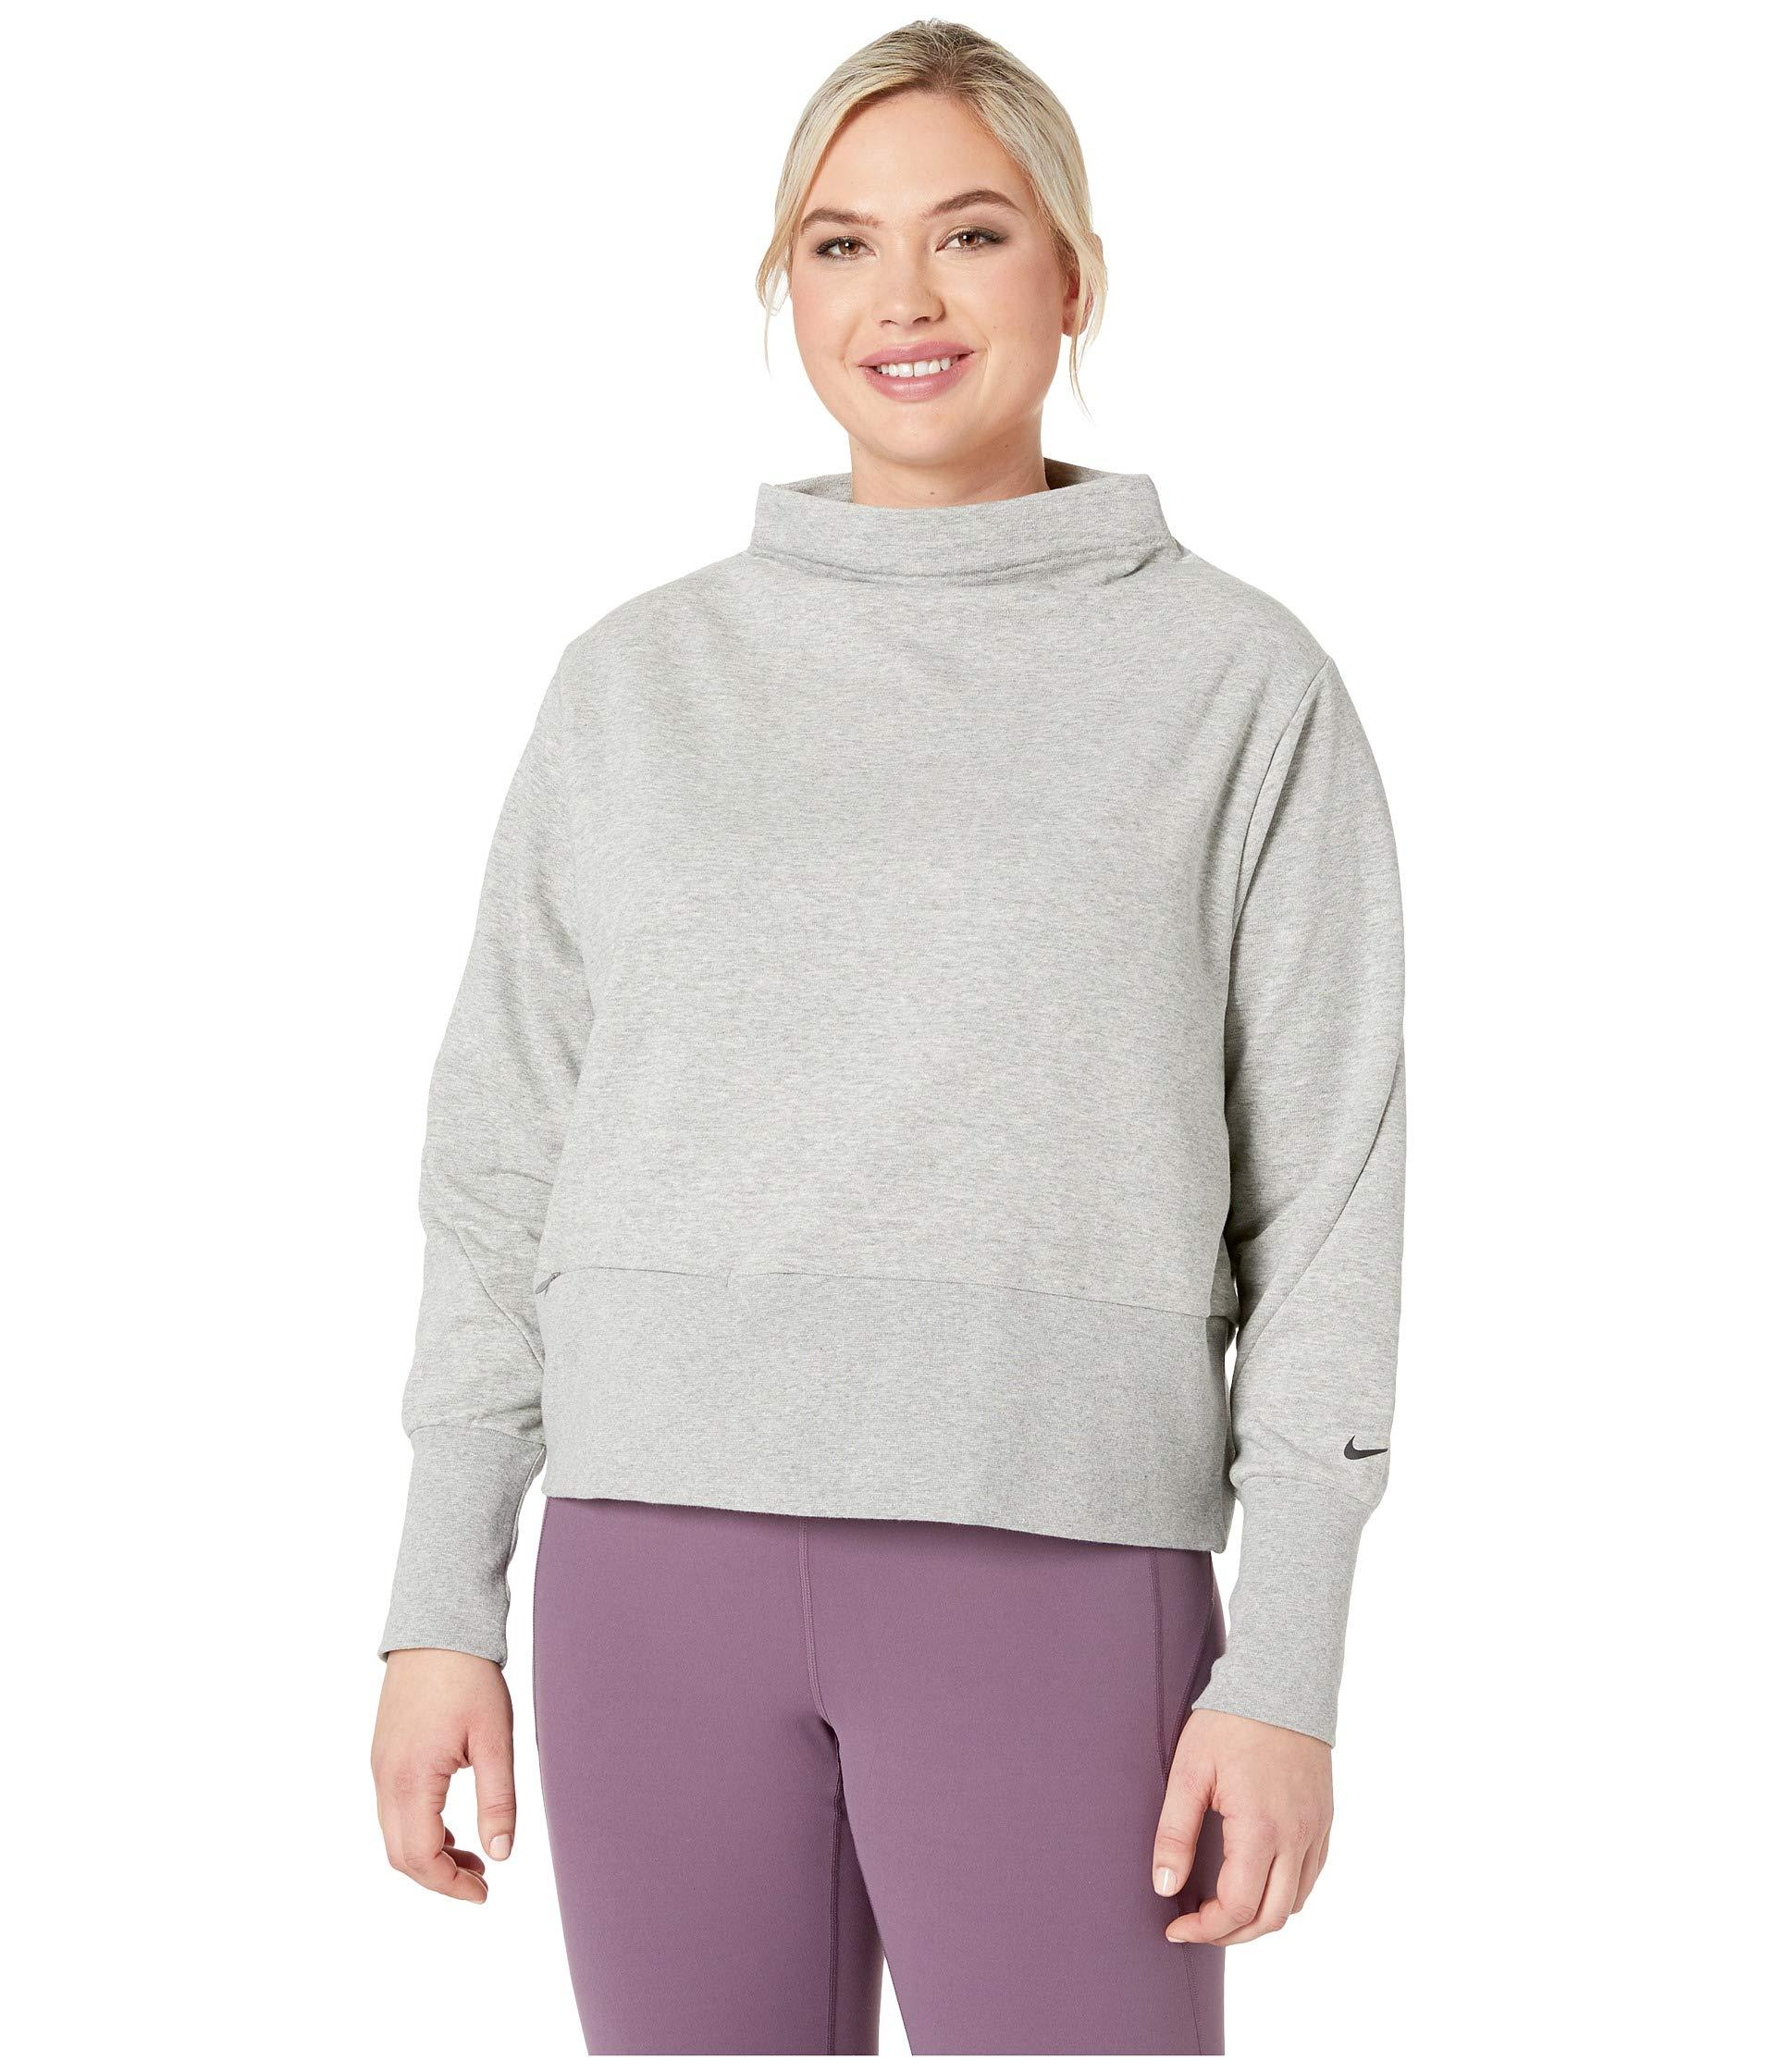 2d7354cfb2e5 Lyst - Nike Studio Mock Neck Versa Pullover (sizes 1x-3x) in Gray ...